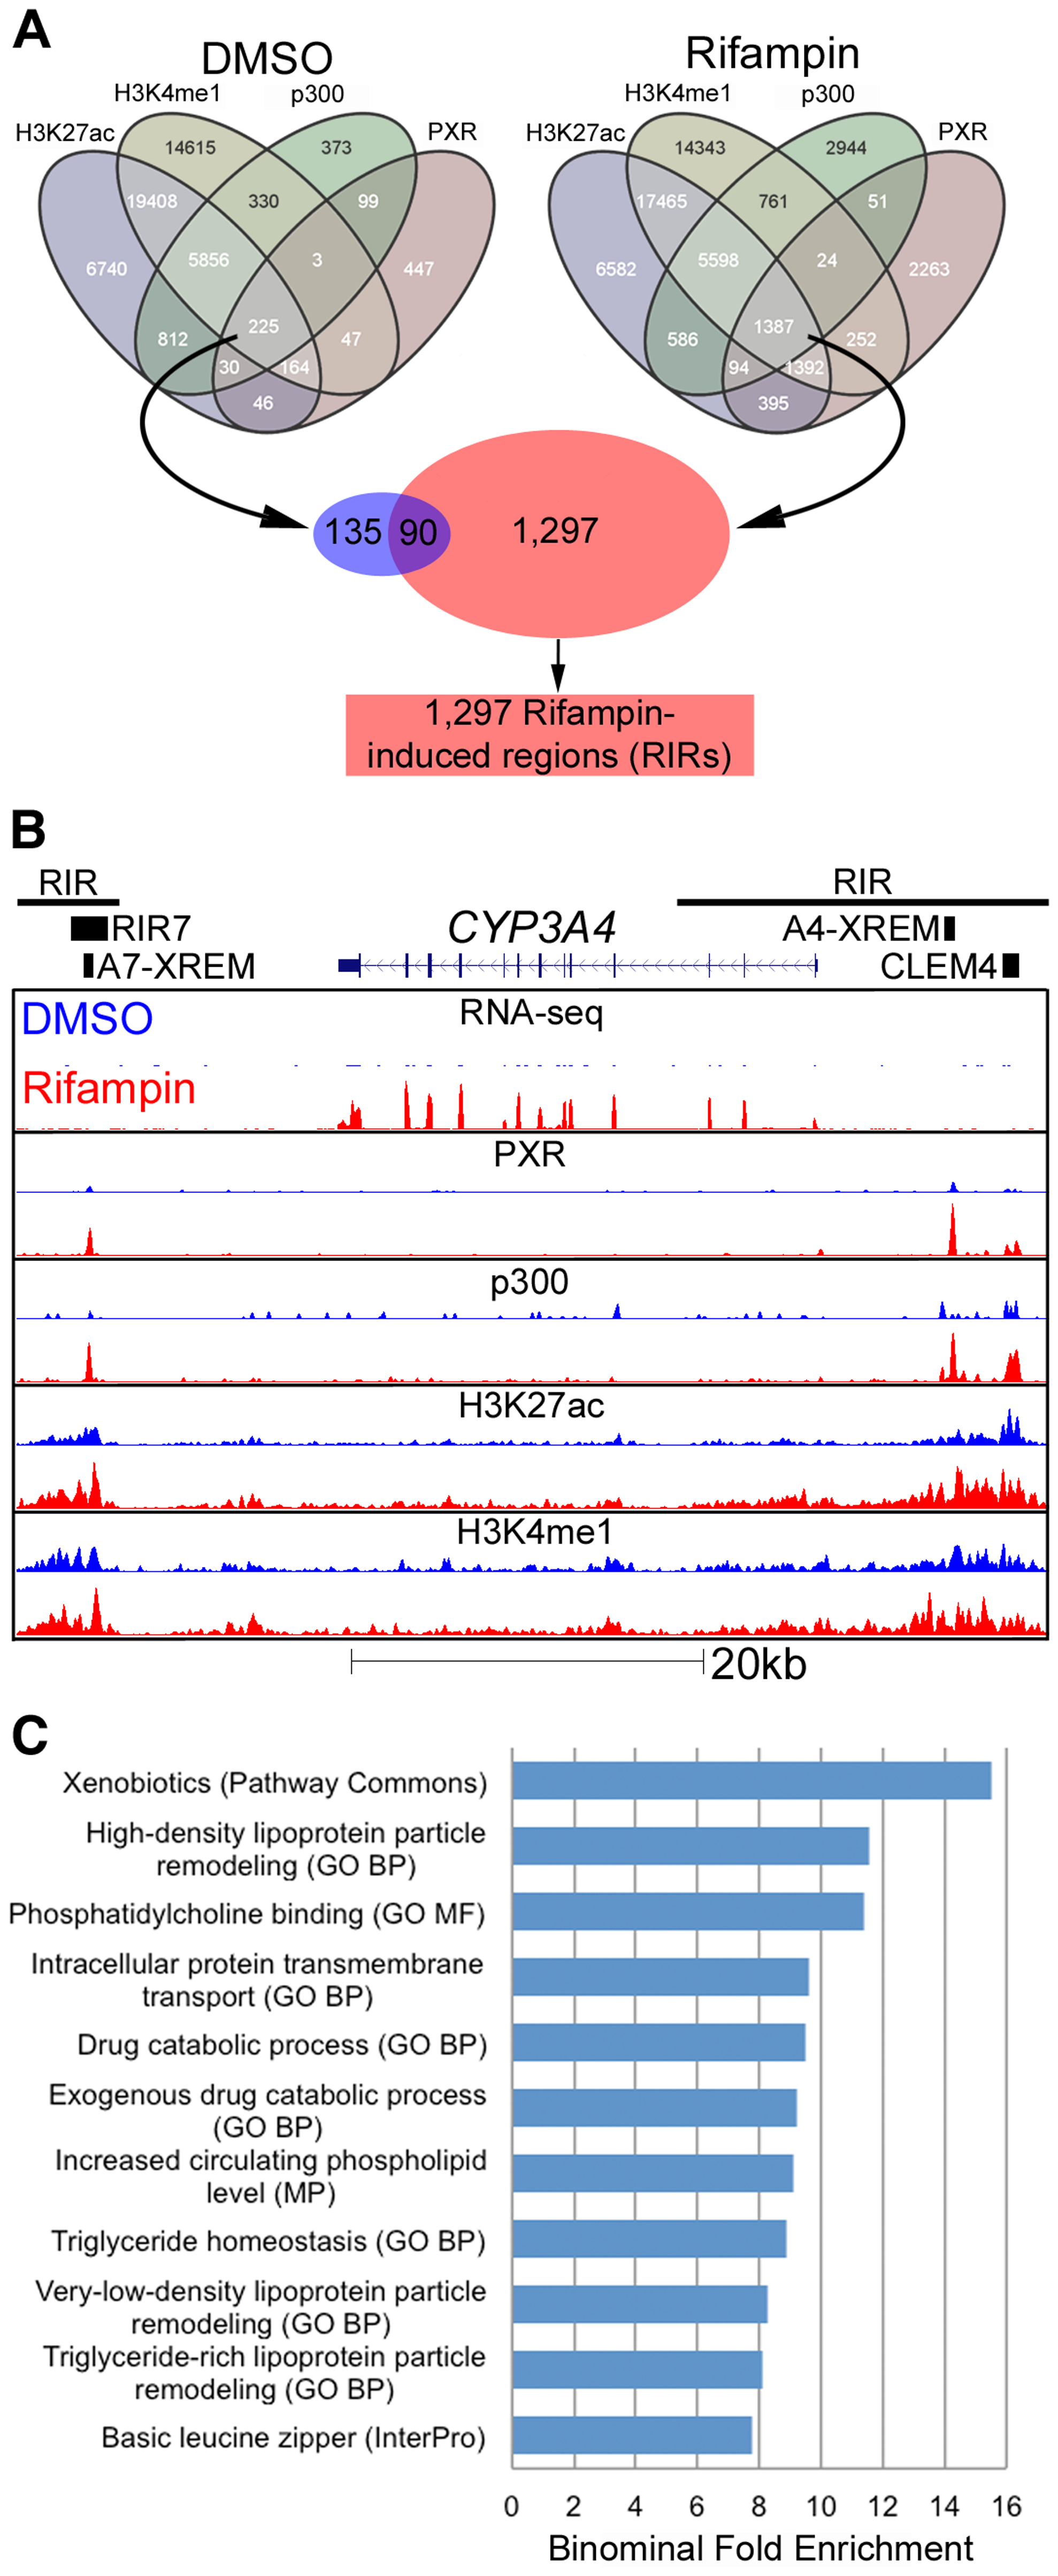 Genomic characterization of RIRs.